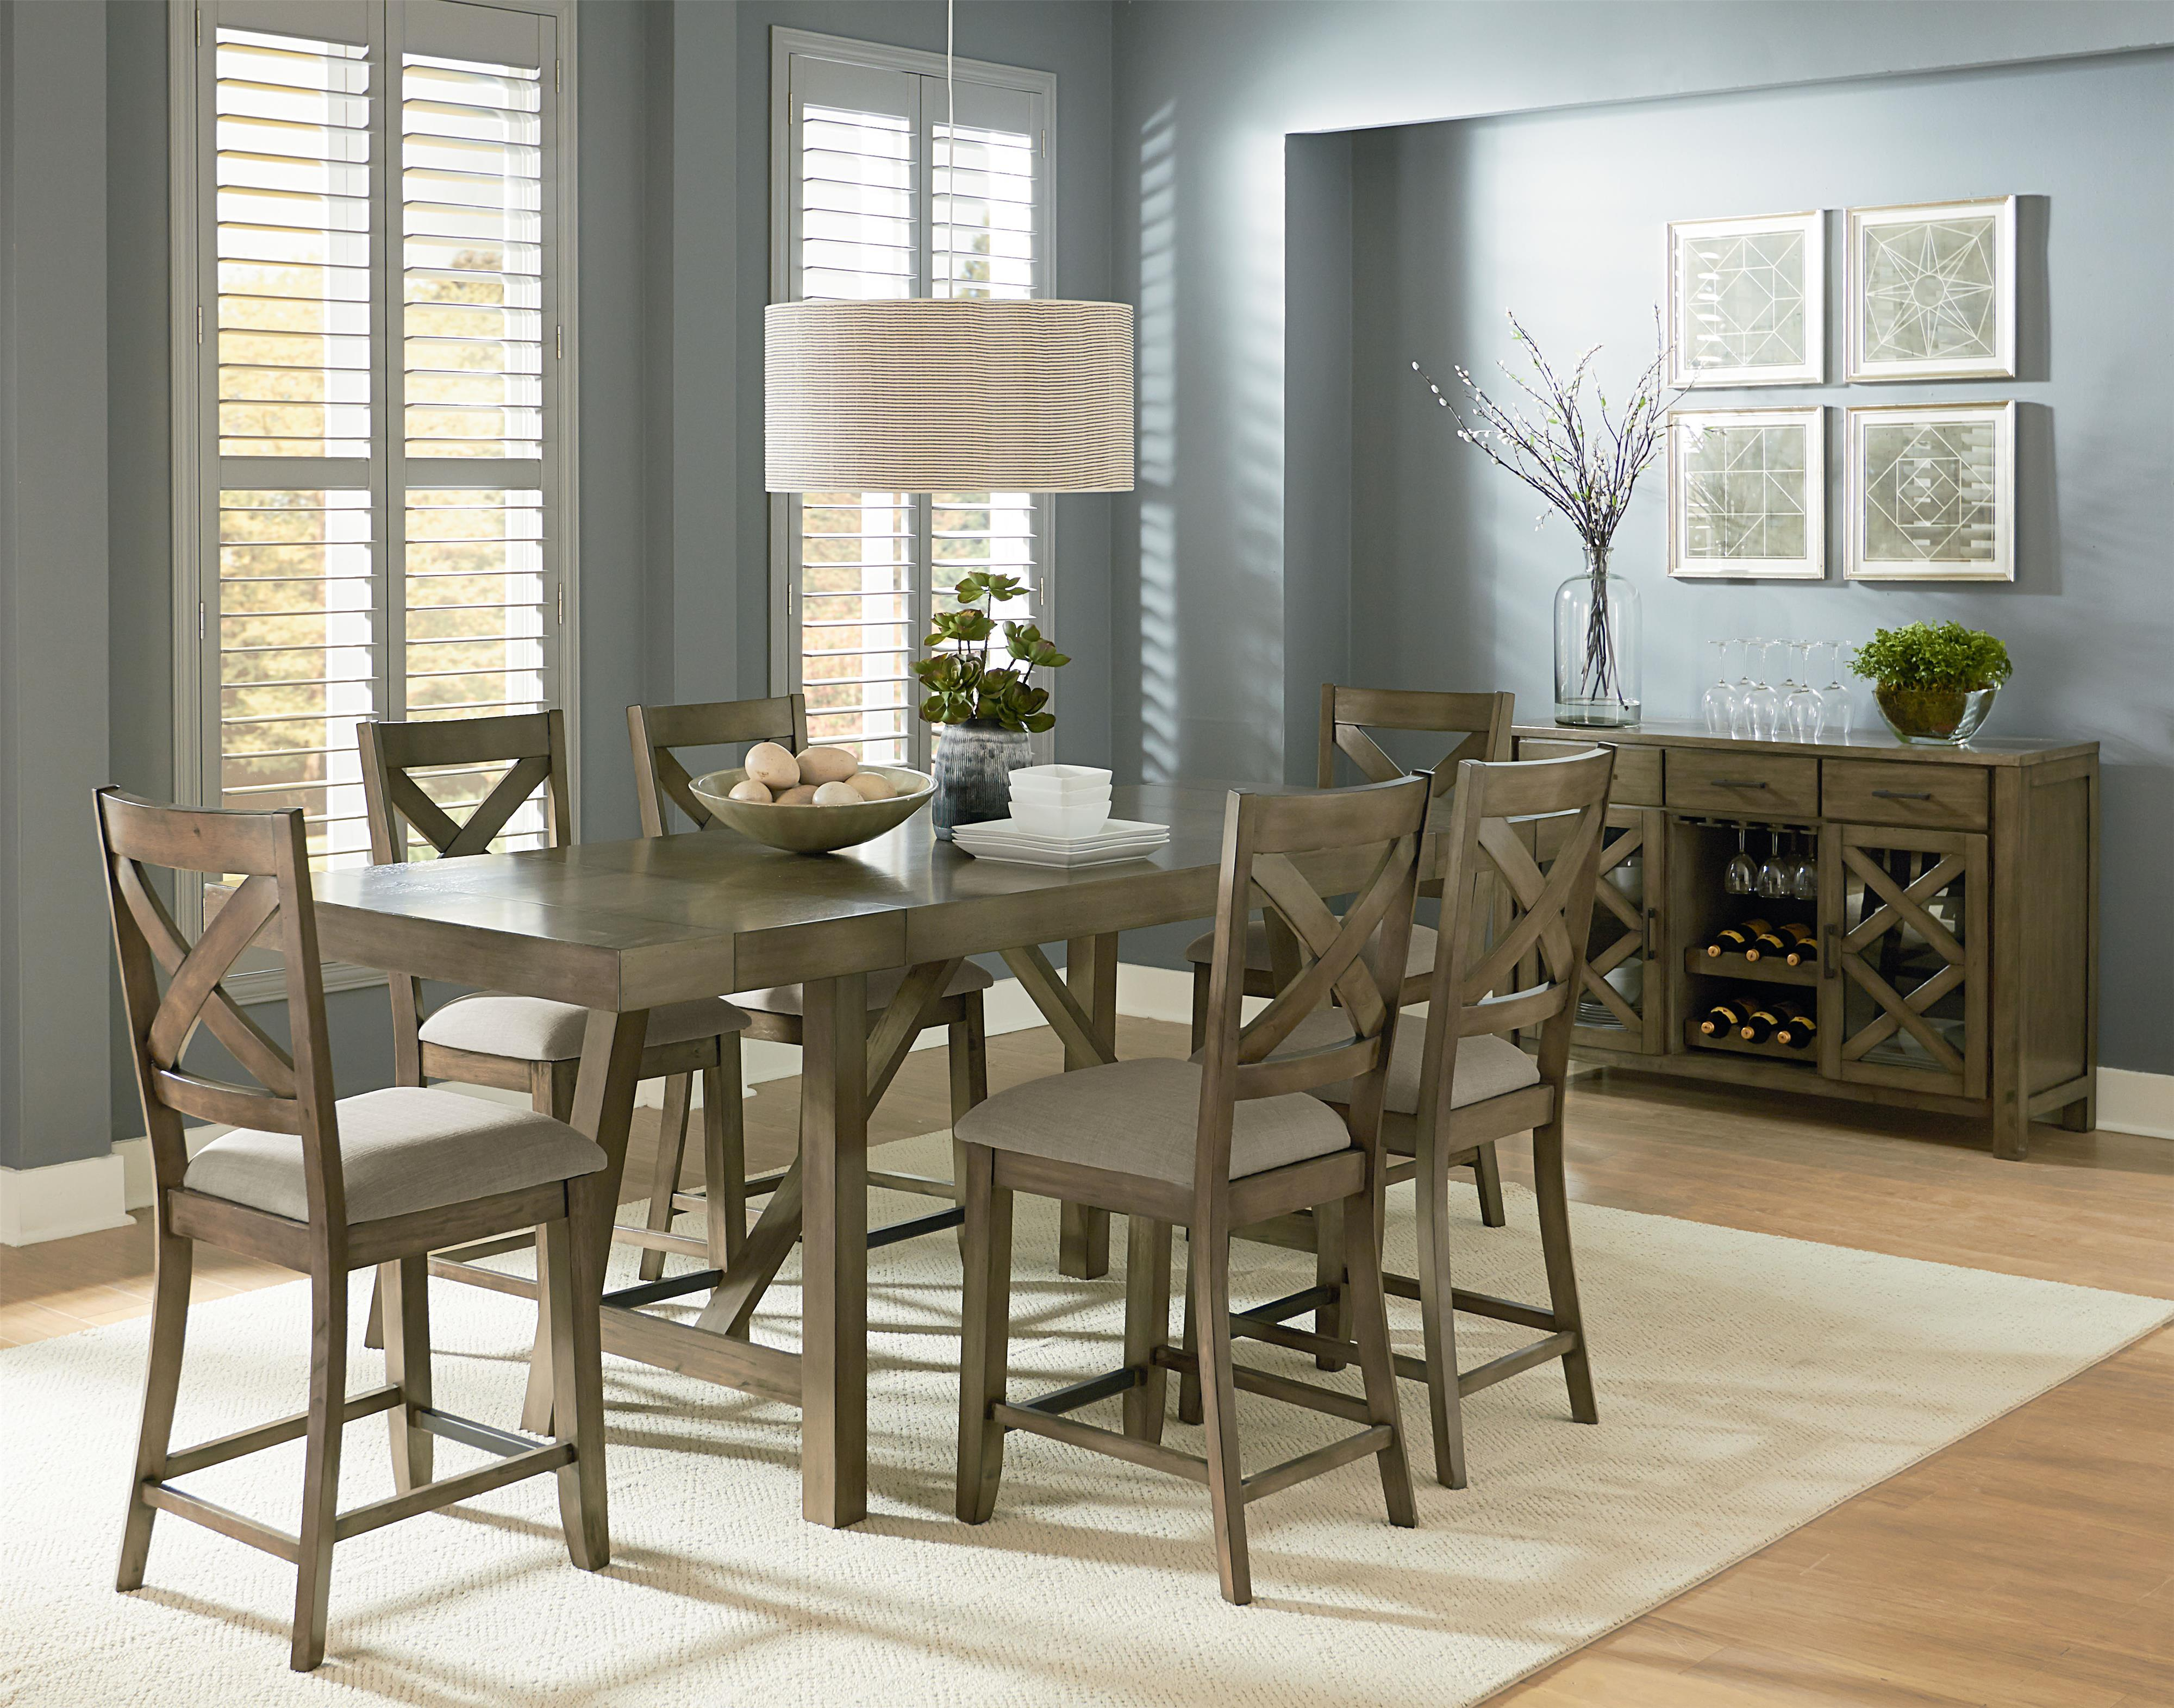 Standard Furniture Omaha Grey Casual Dining Room Group   Item Number: 16680  Dining Room Group